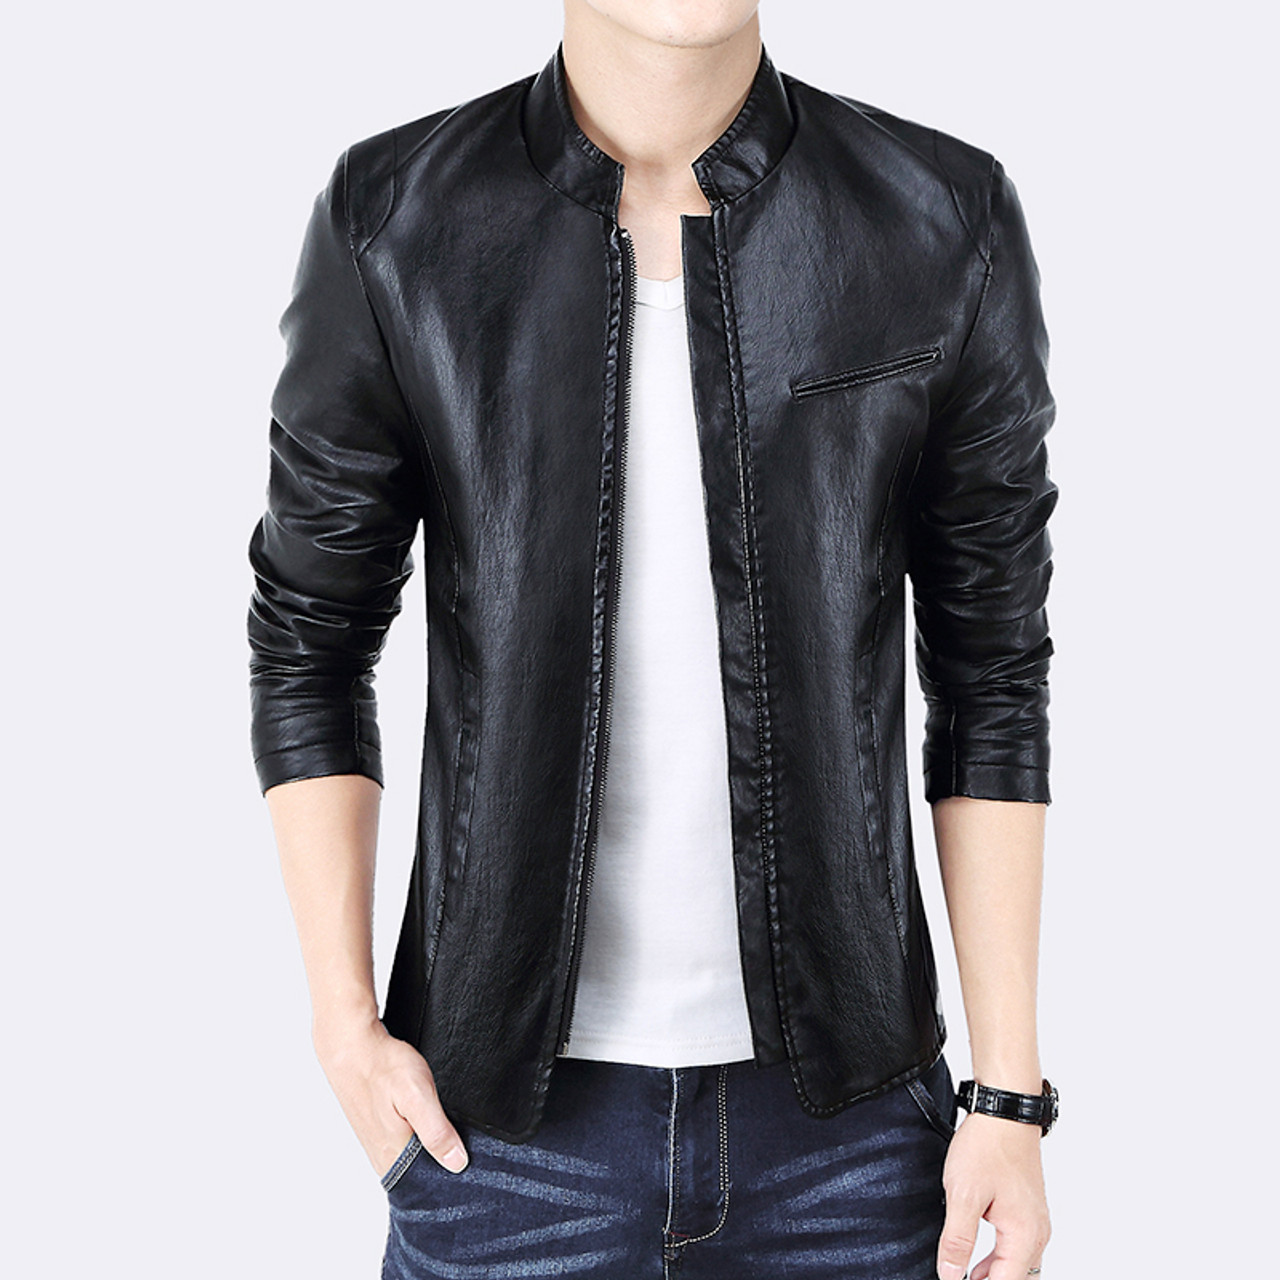 dd156c053db ... New Brand Men's Jackets PU Leather Jacket Punk Red Leather Jackets  Zipper Men Chupas De Cuero ...